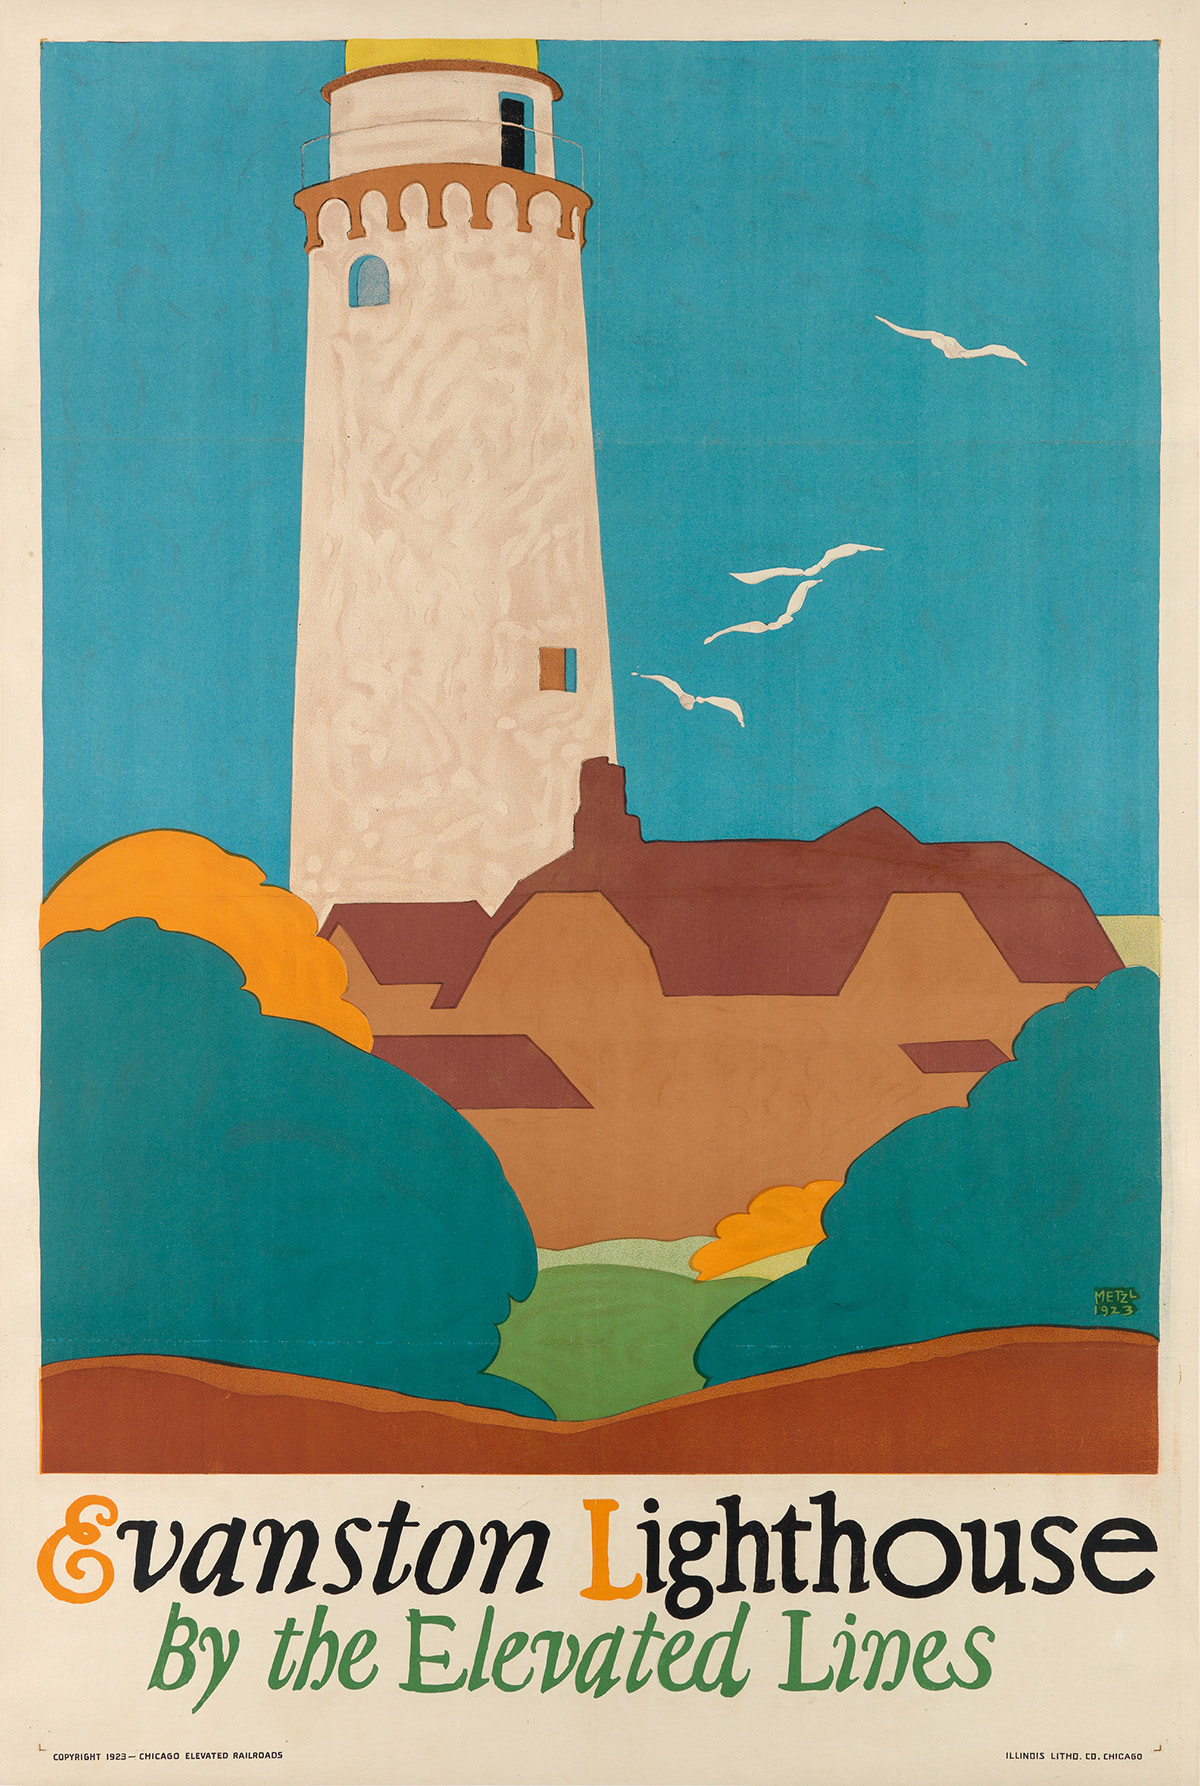 ERVINE-METZL-(1899-1963)-EVANSTON-LIGHTHOUSE--BY-THE-ELEVATE